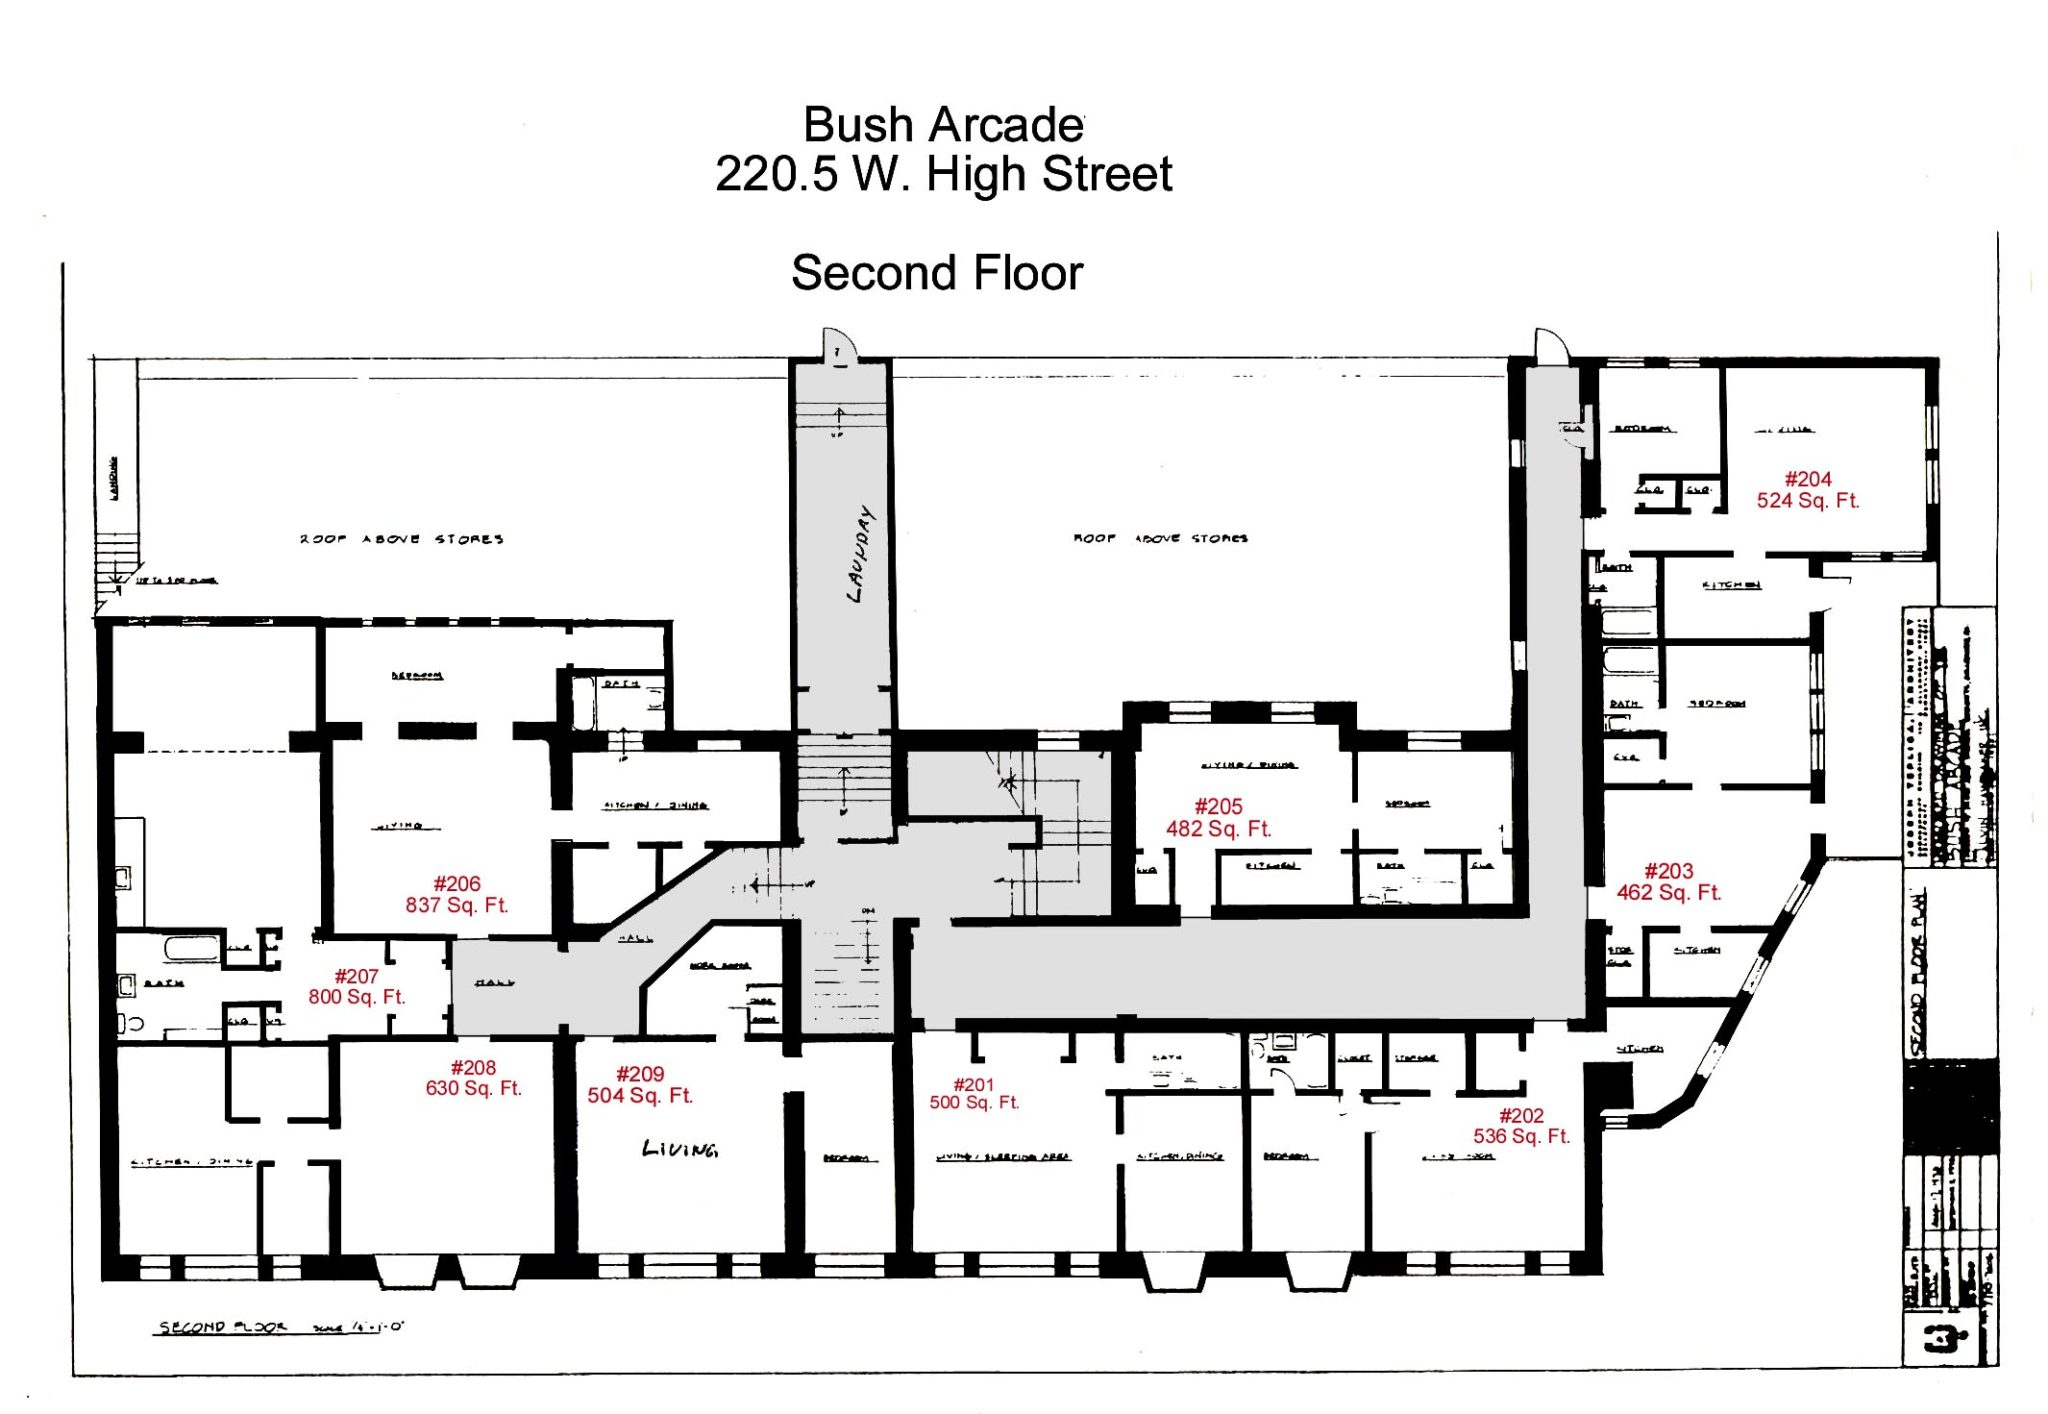 Floor Plans for apartment #201 to #209 at the Bush Arcade Building in Bellefonte PA